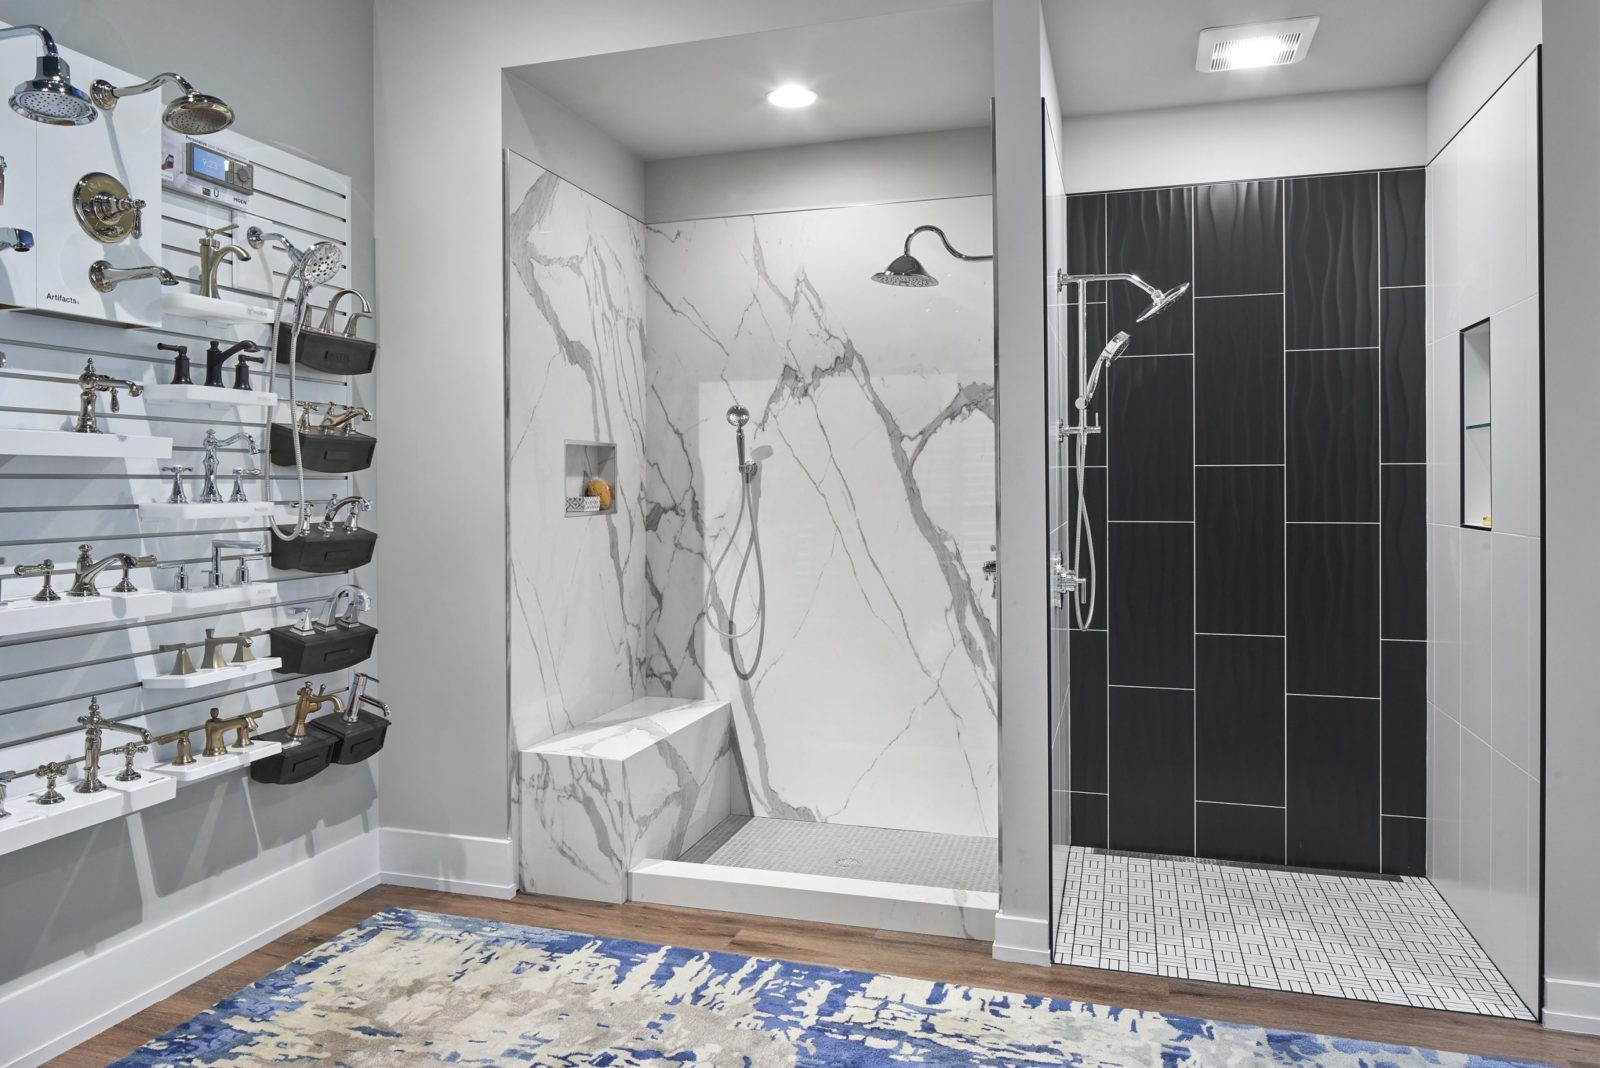 A porcelain slab shower enclosure on the left and a contemporary alcove shower on the right.